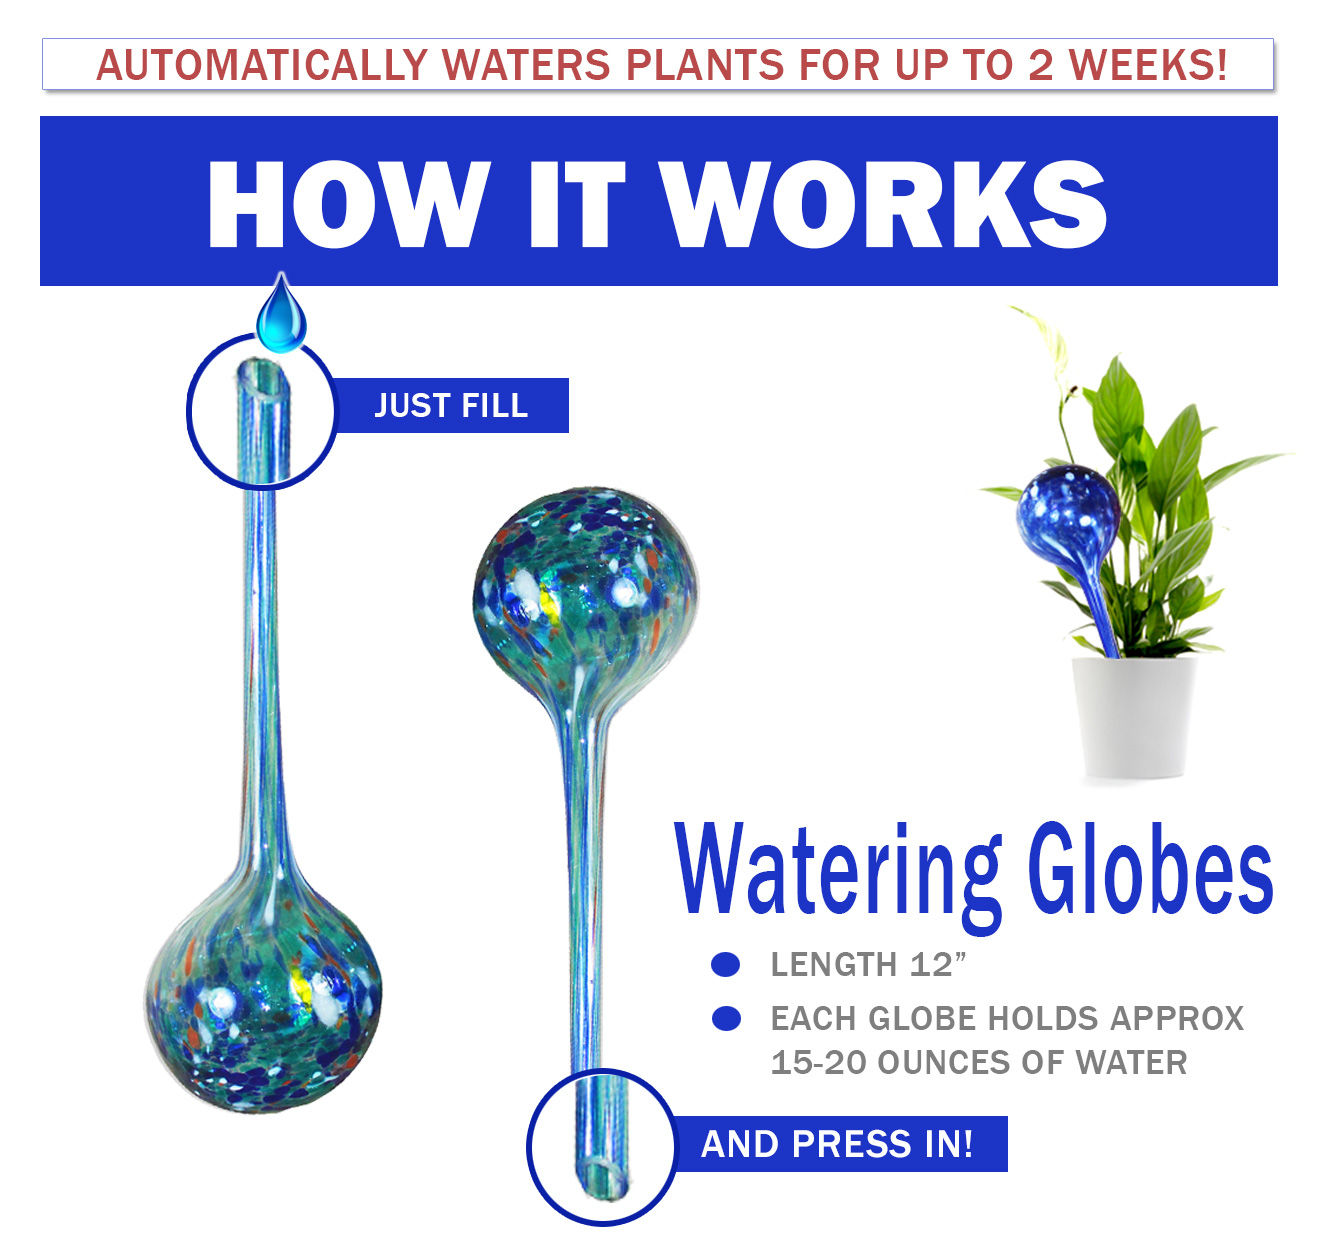 Glass Watering Globes Automatic Glass Watering Bulbs Plant Watering Globes Waterers Dripping Equipment for Indoor Outdoor Garden Potted Plants 2.95 inch Diameter 3-Pack